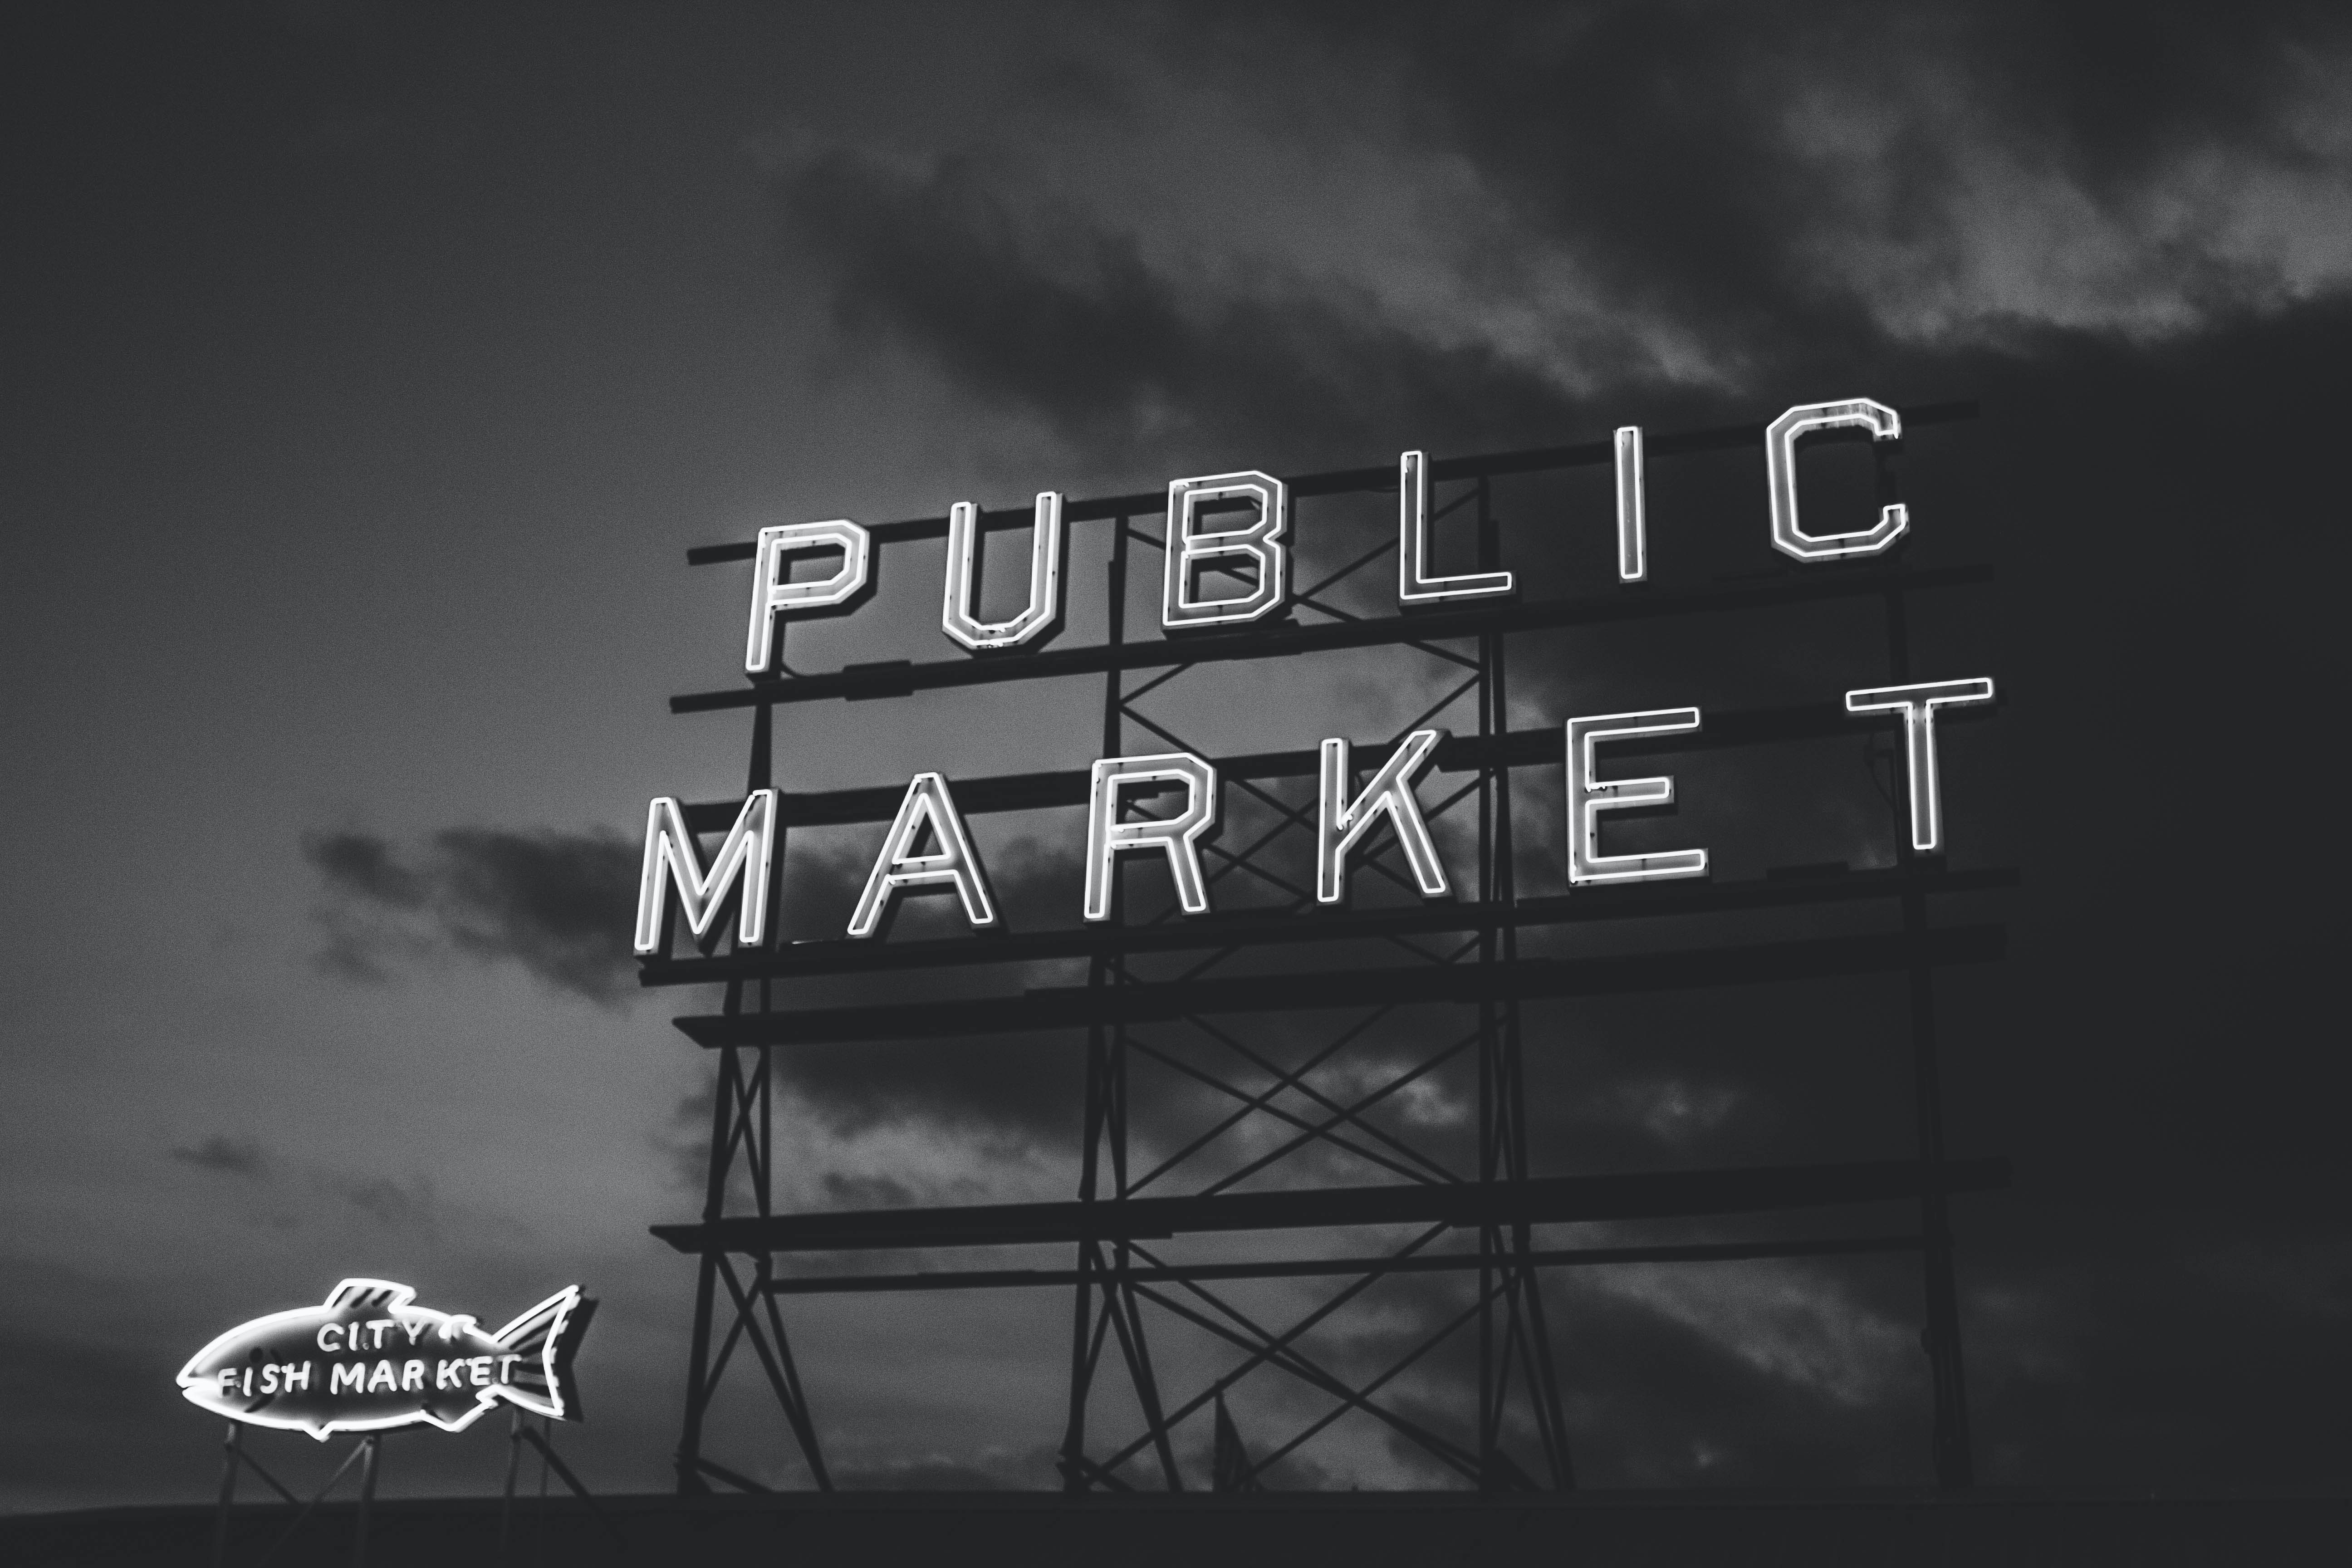 grayscale photography of Public Market neon signage